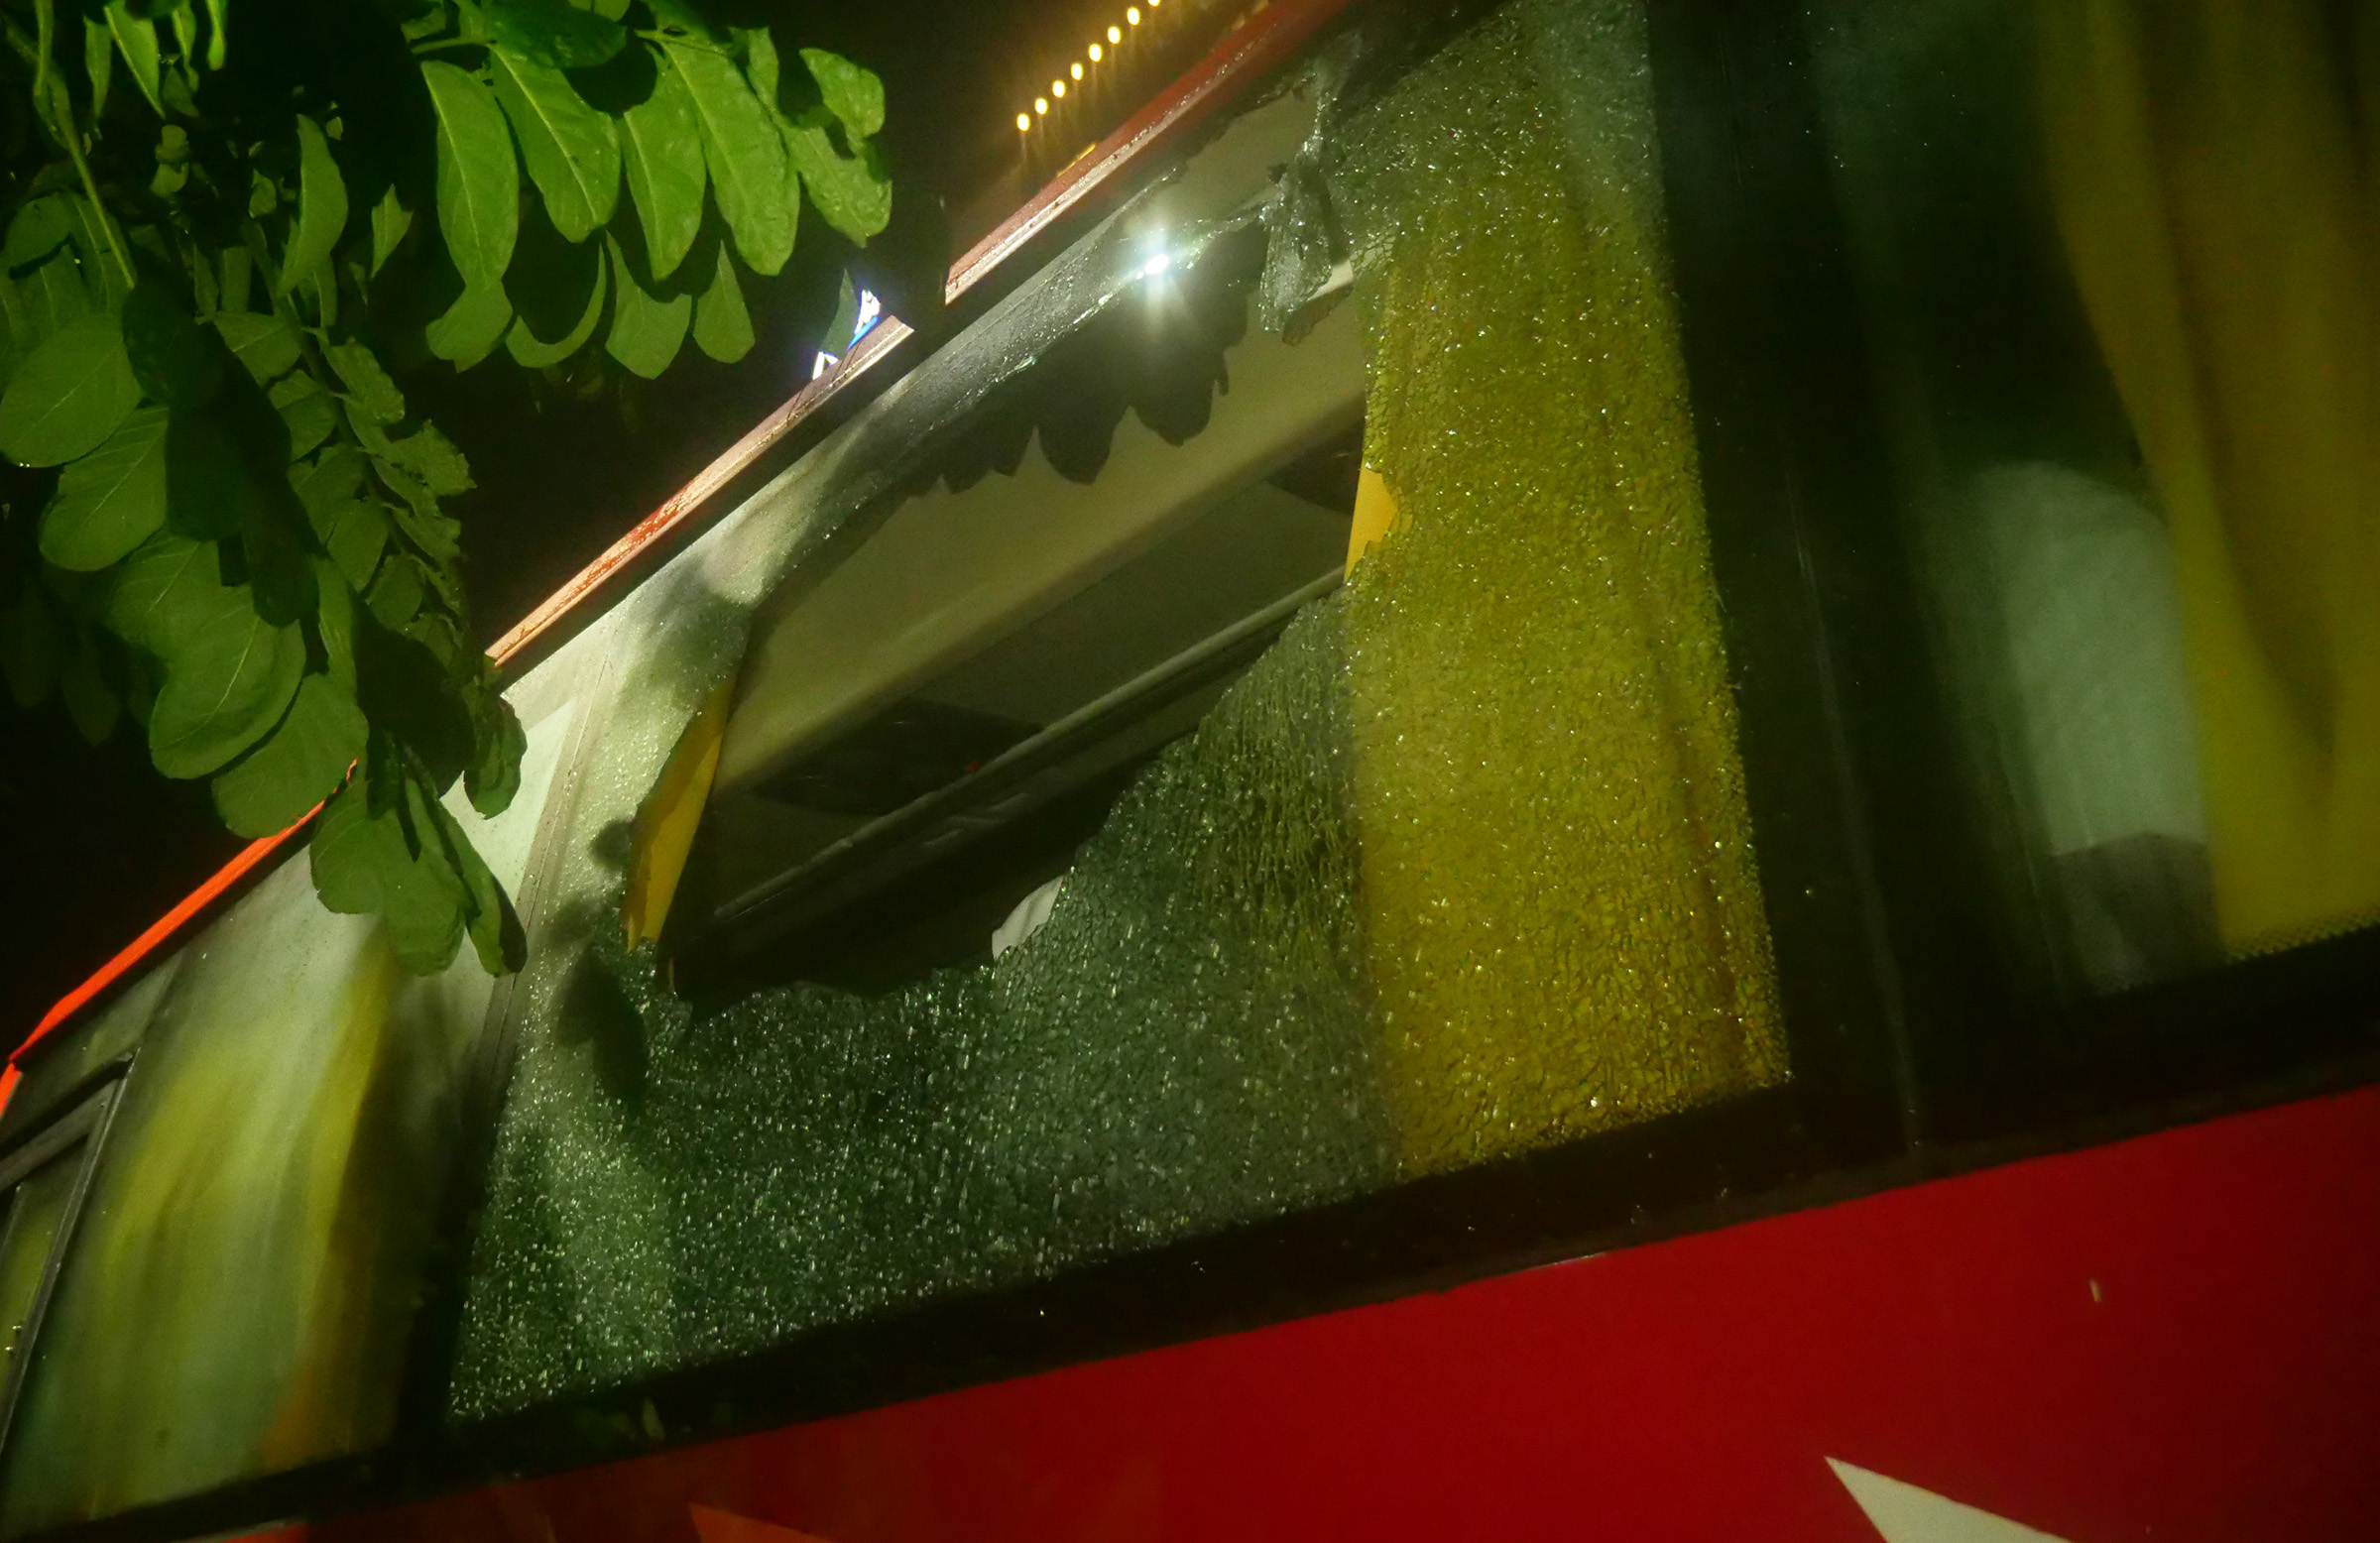 The damage to the Australian team's bus after a rock was thrown // cricket.com.au